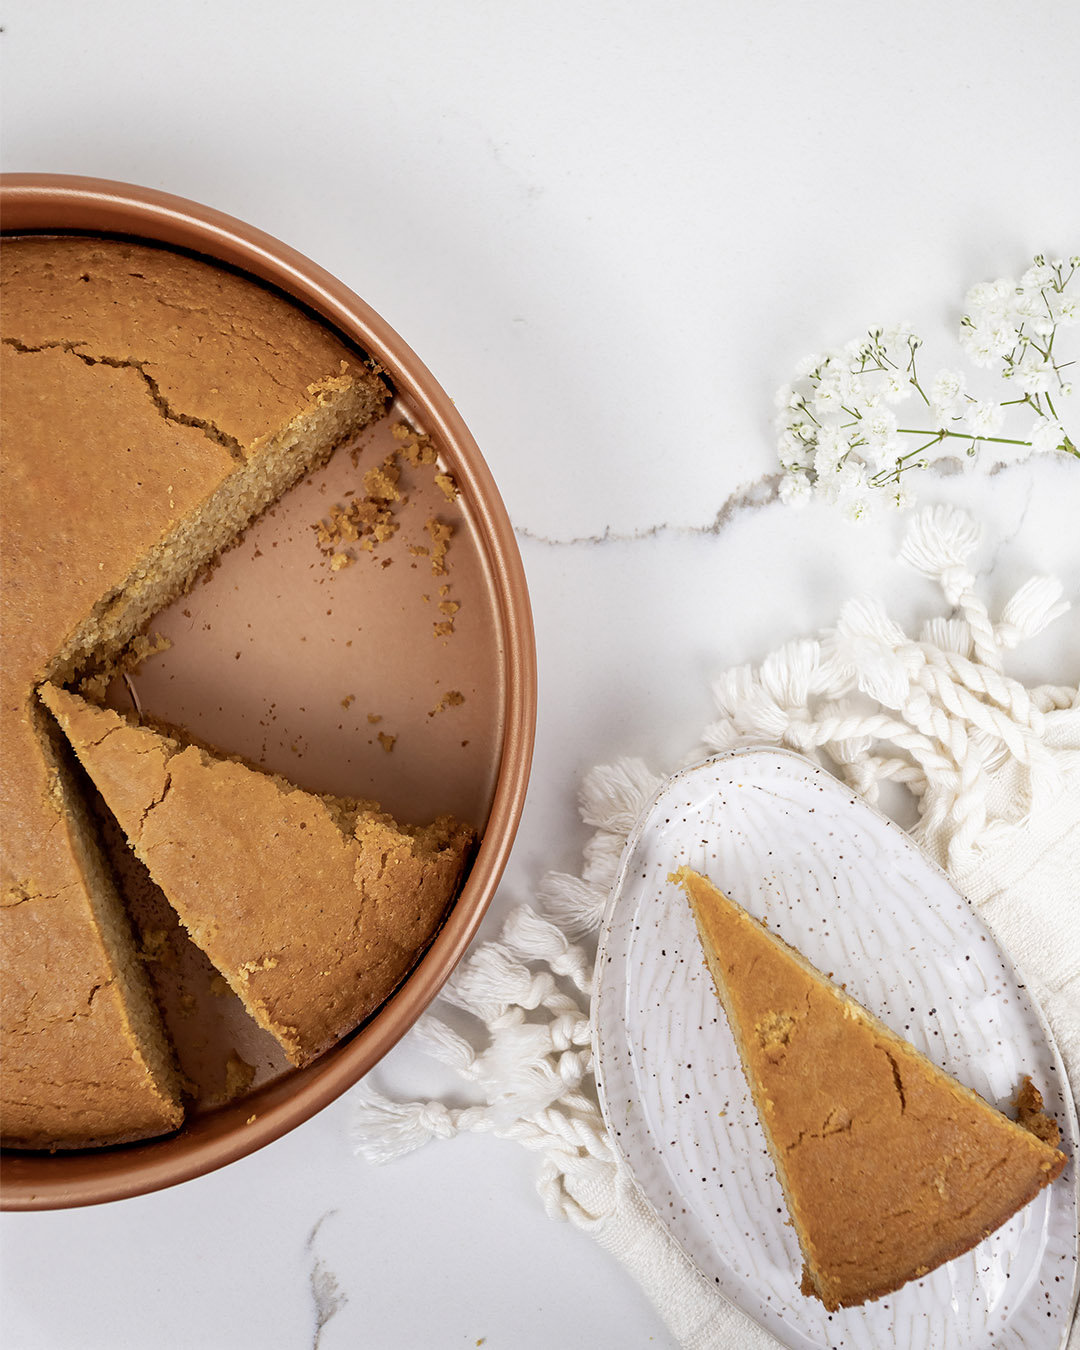 In today's post I'm going to be sharing my new favourite classic cornbread recipe, well classic-ish. I decided to see if I could make this summertime staple plant-based and gluten-free without sacrificing flavour or texture, and I have to say that I nailed it, which is why I'm sharing it with you here today. :)